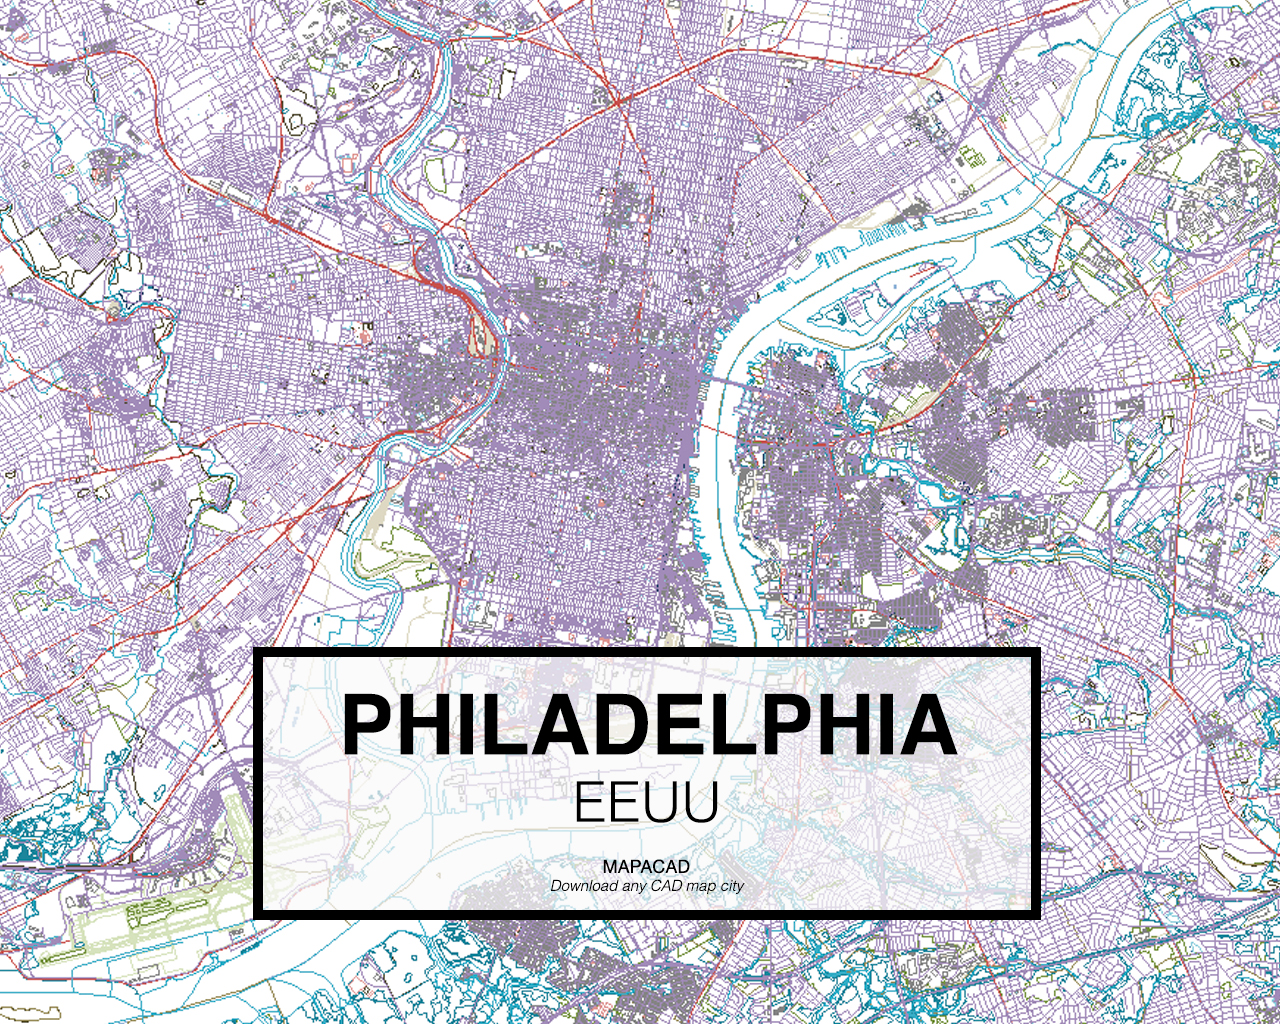 Download philadelphia dwg mapacad philadelphia eeuu 01 mapacad download map cad dwg gumiabroncs Gallery